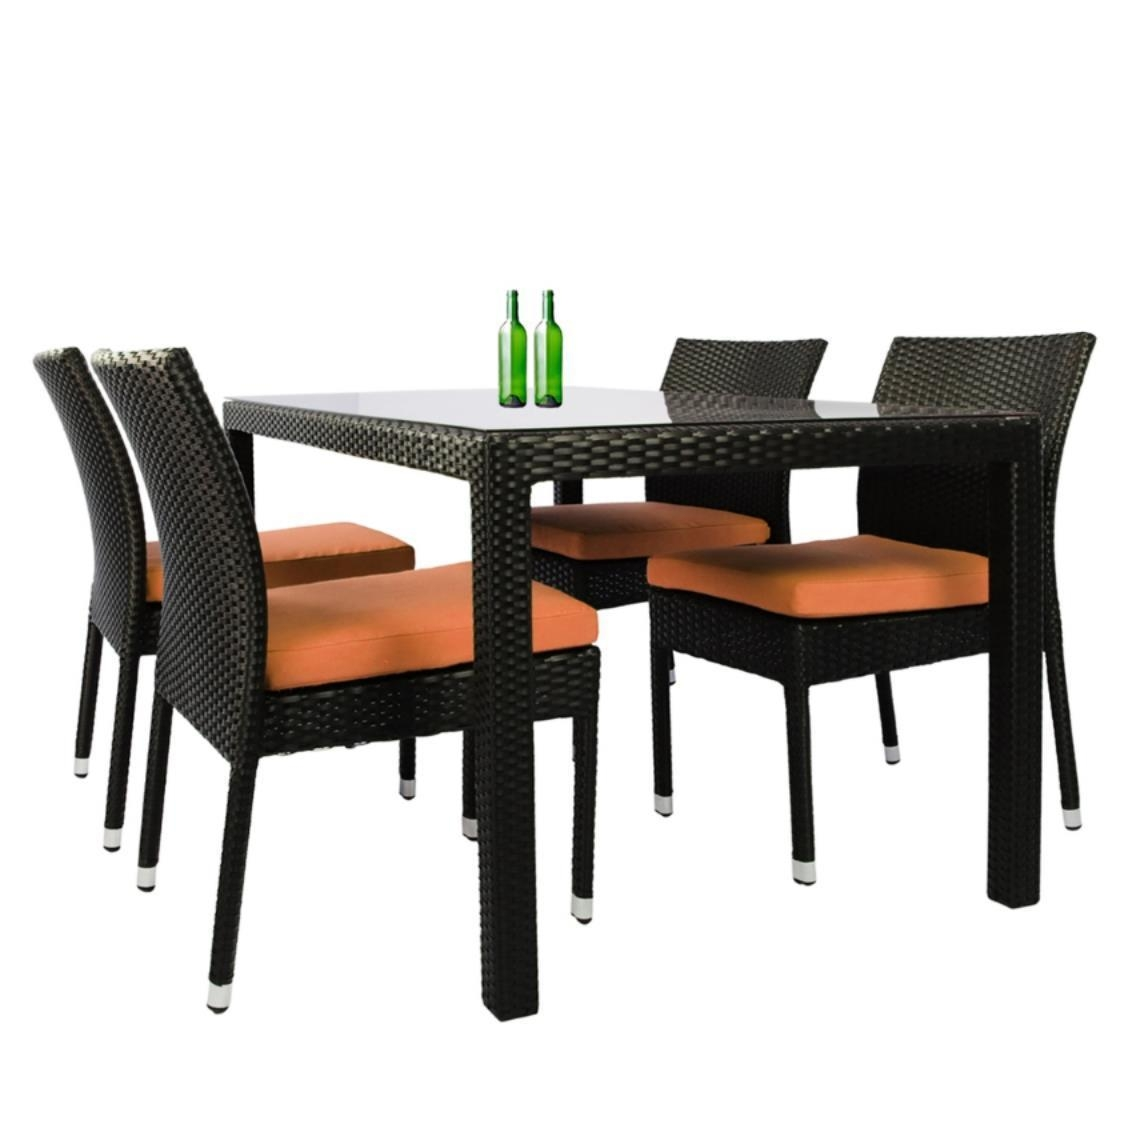 Casa 4 Chair Dining Set Orange Cushion